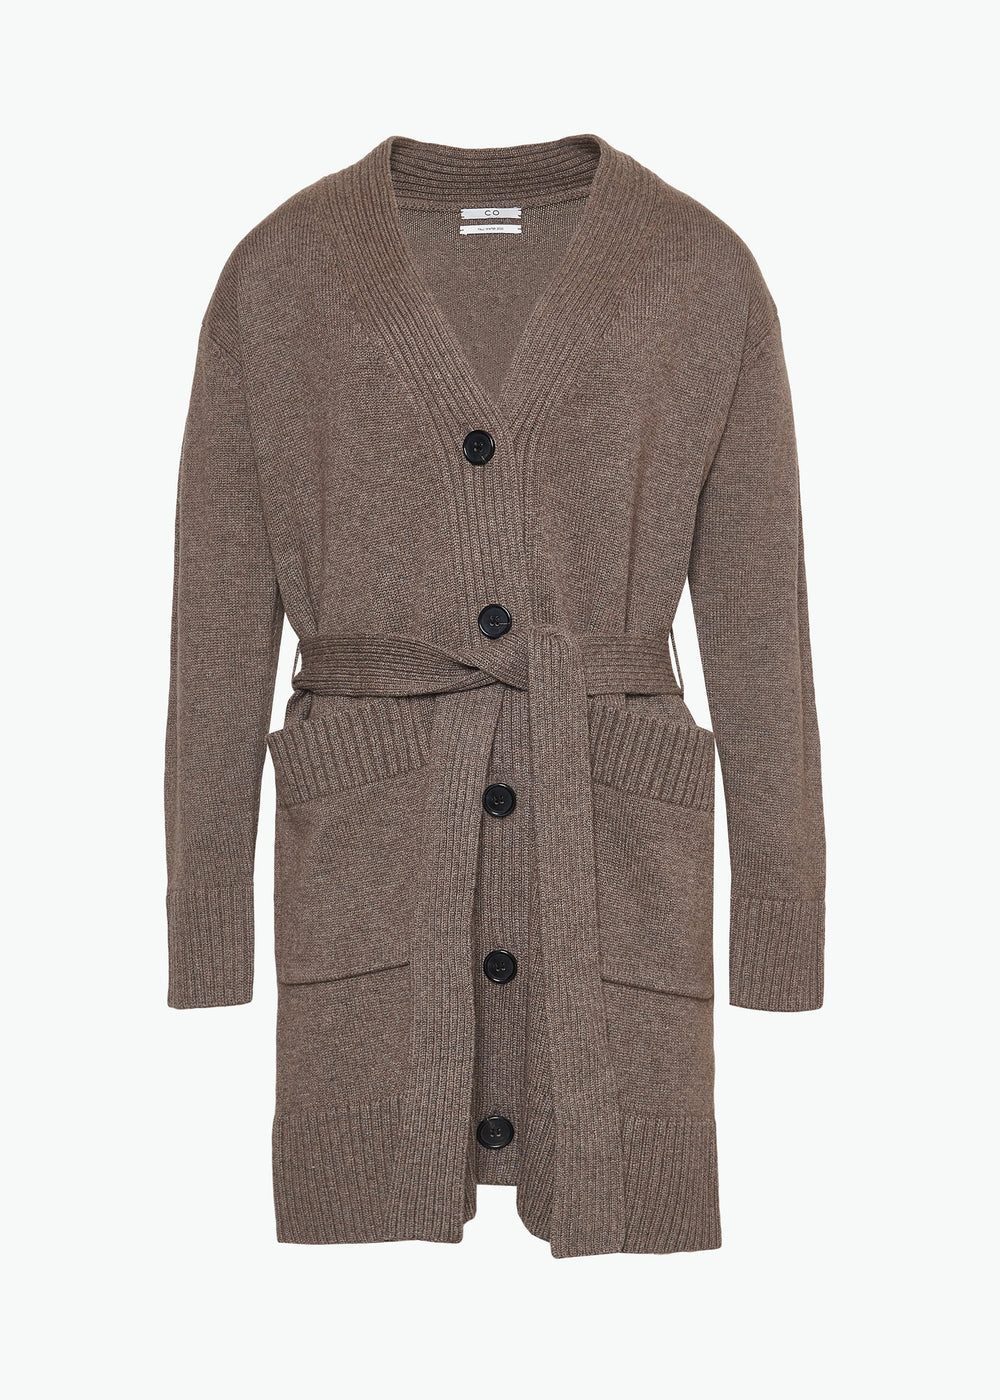 Belted Cardigan in Wool Cashmere - Walnut - CO